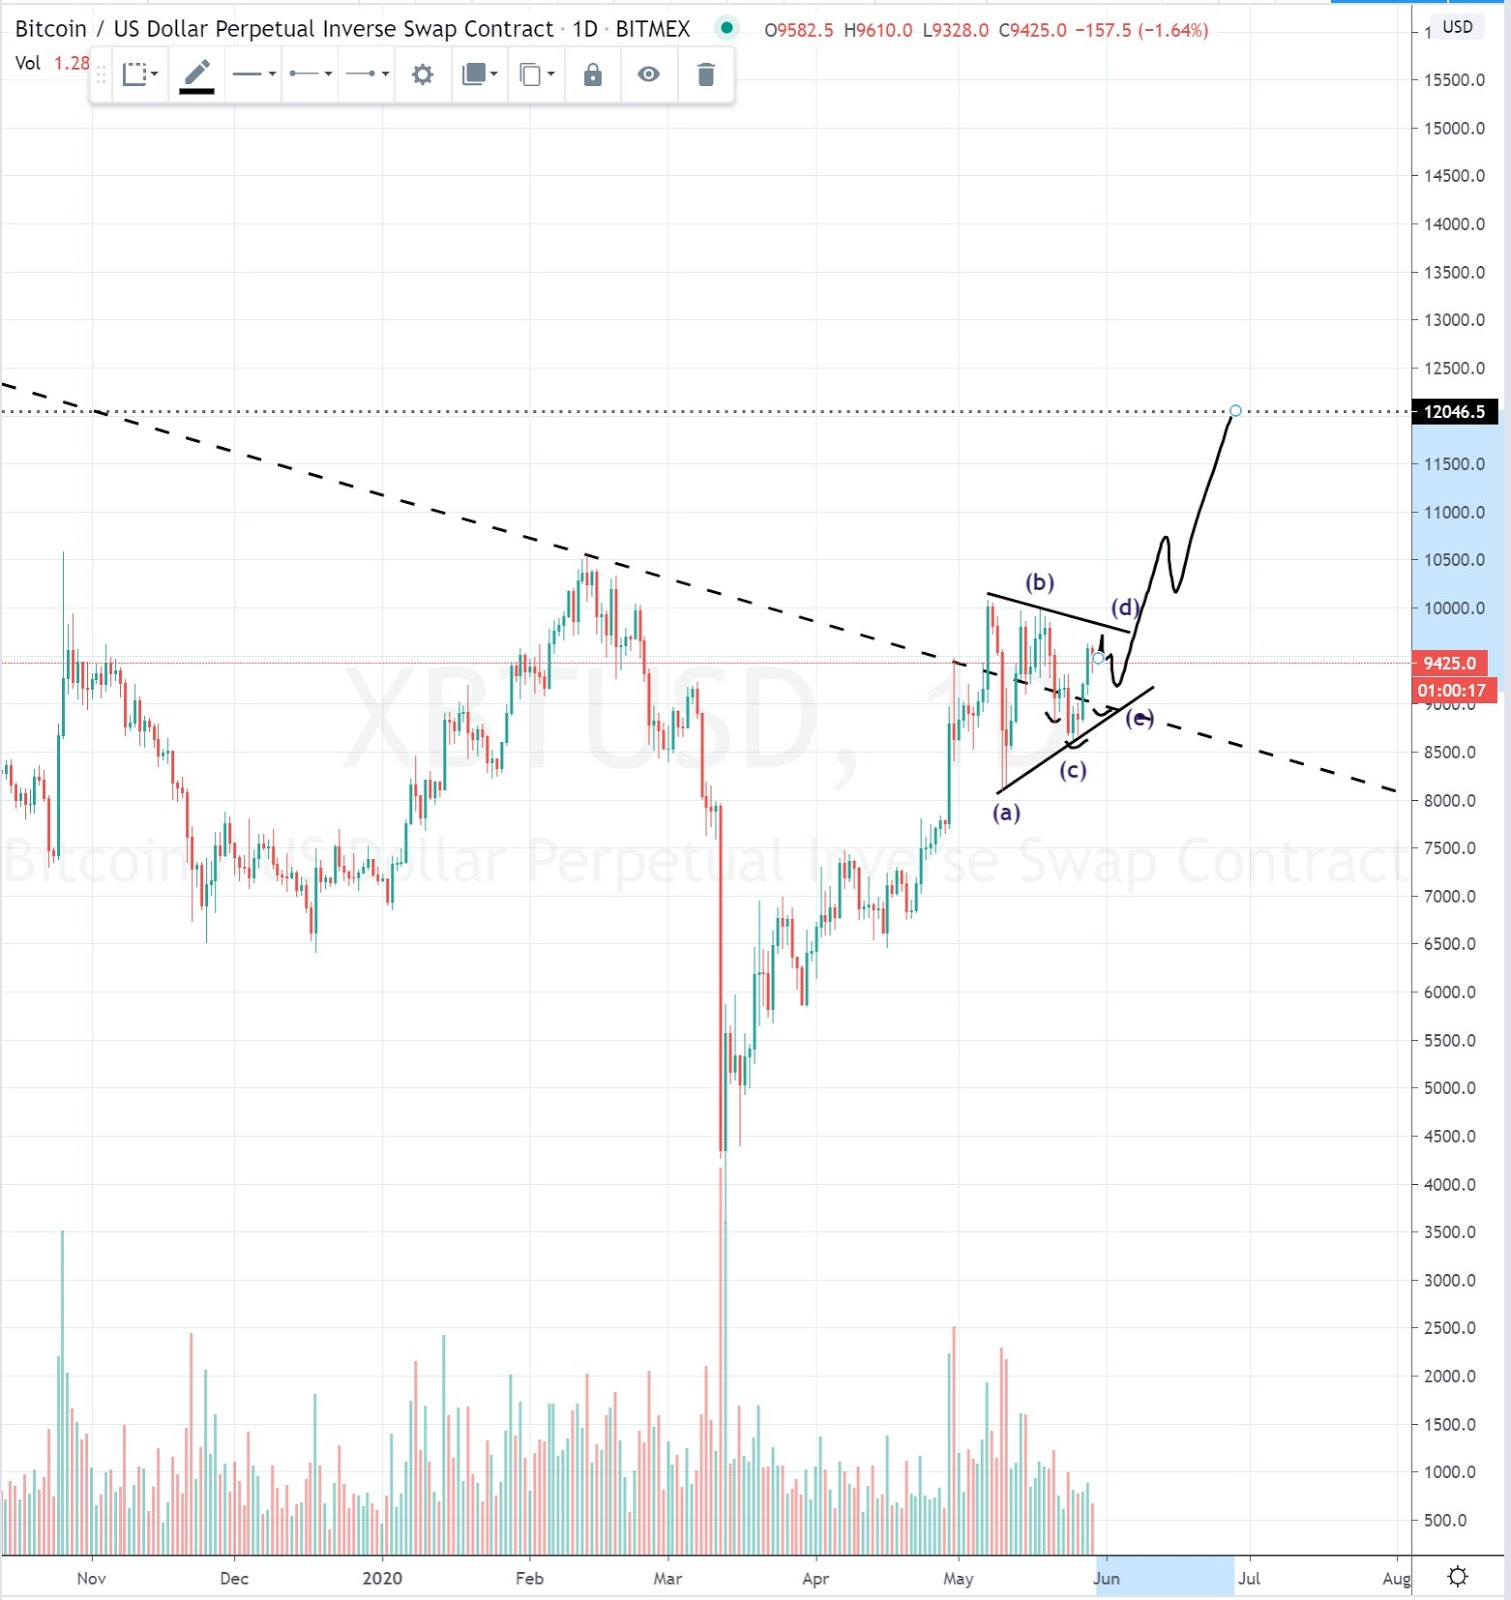 A bullish scenario for Bitcoin in the short-term